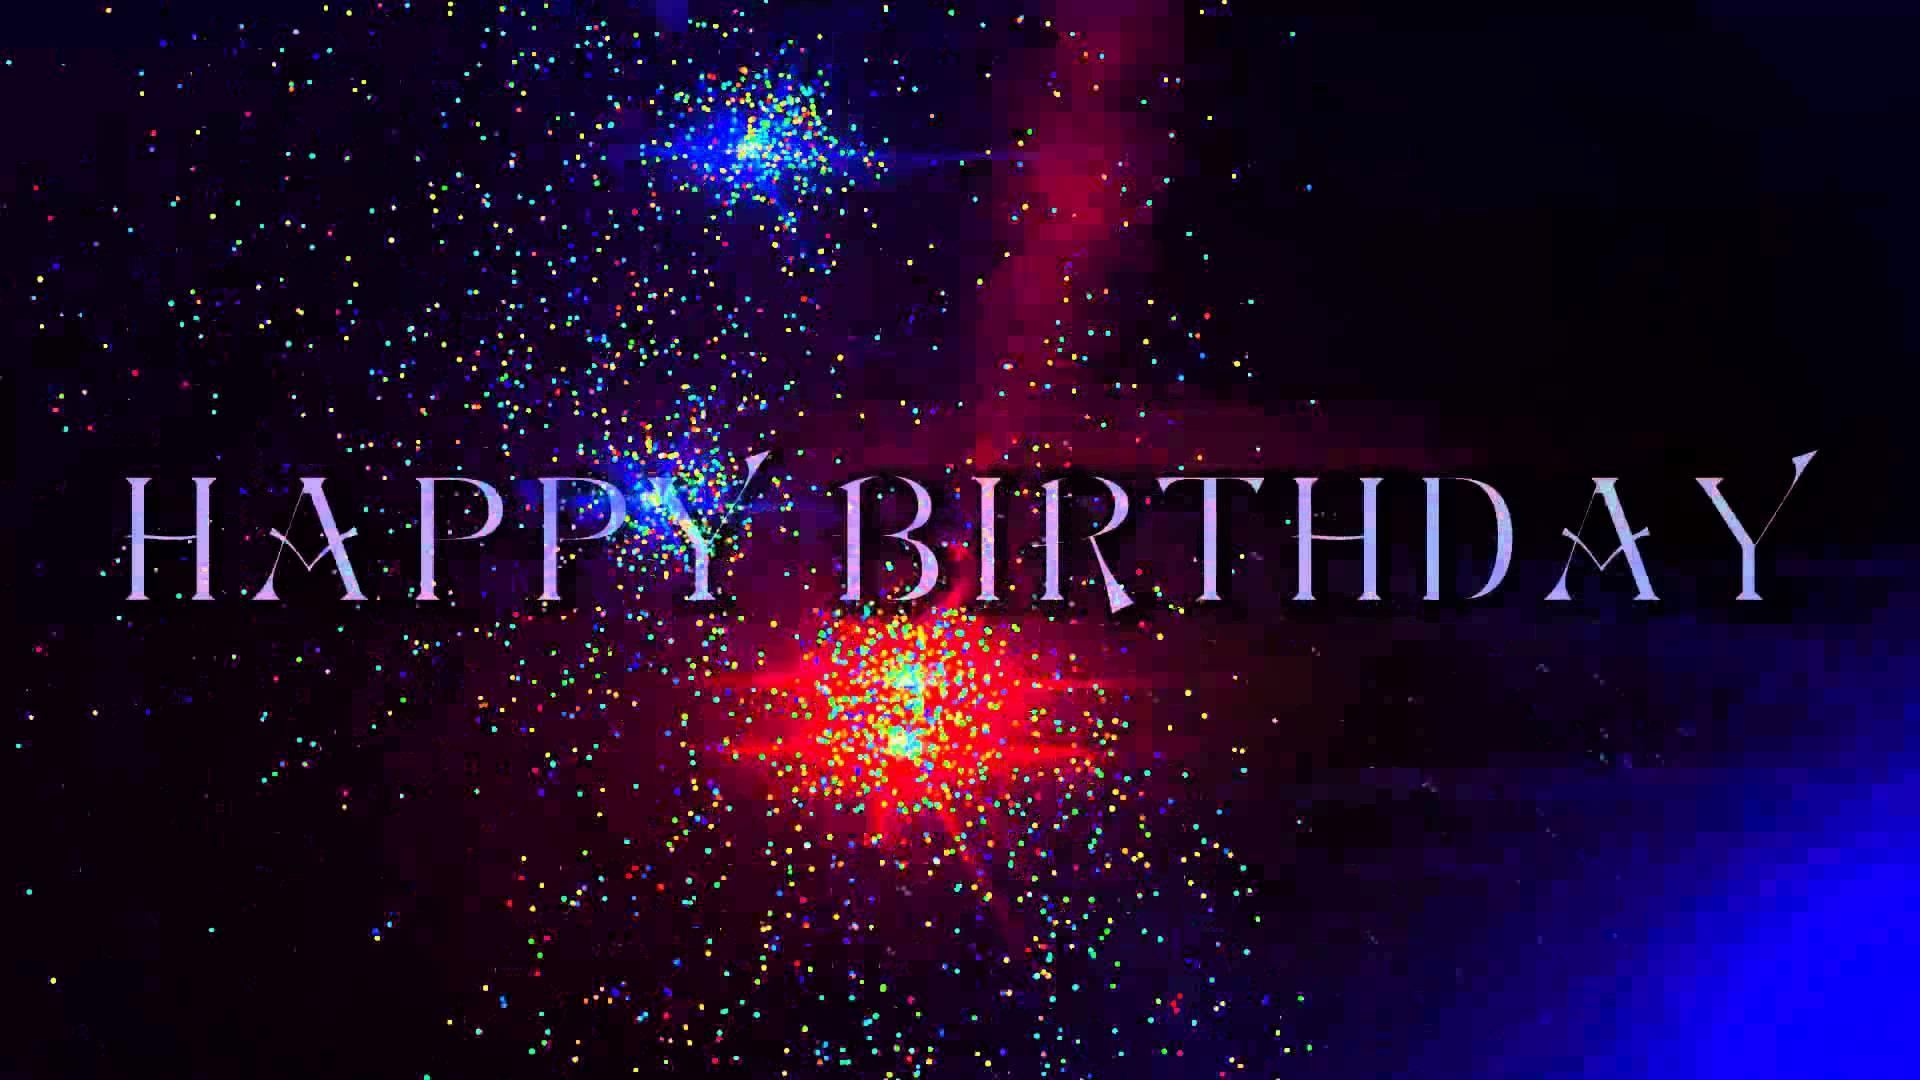 Download Animated Happy Birthday Wallpaper Gallery